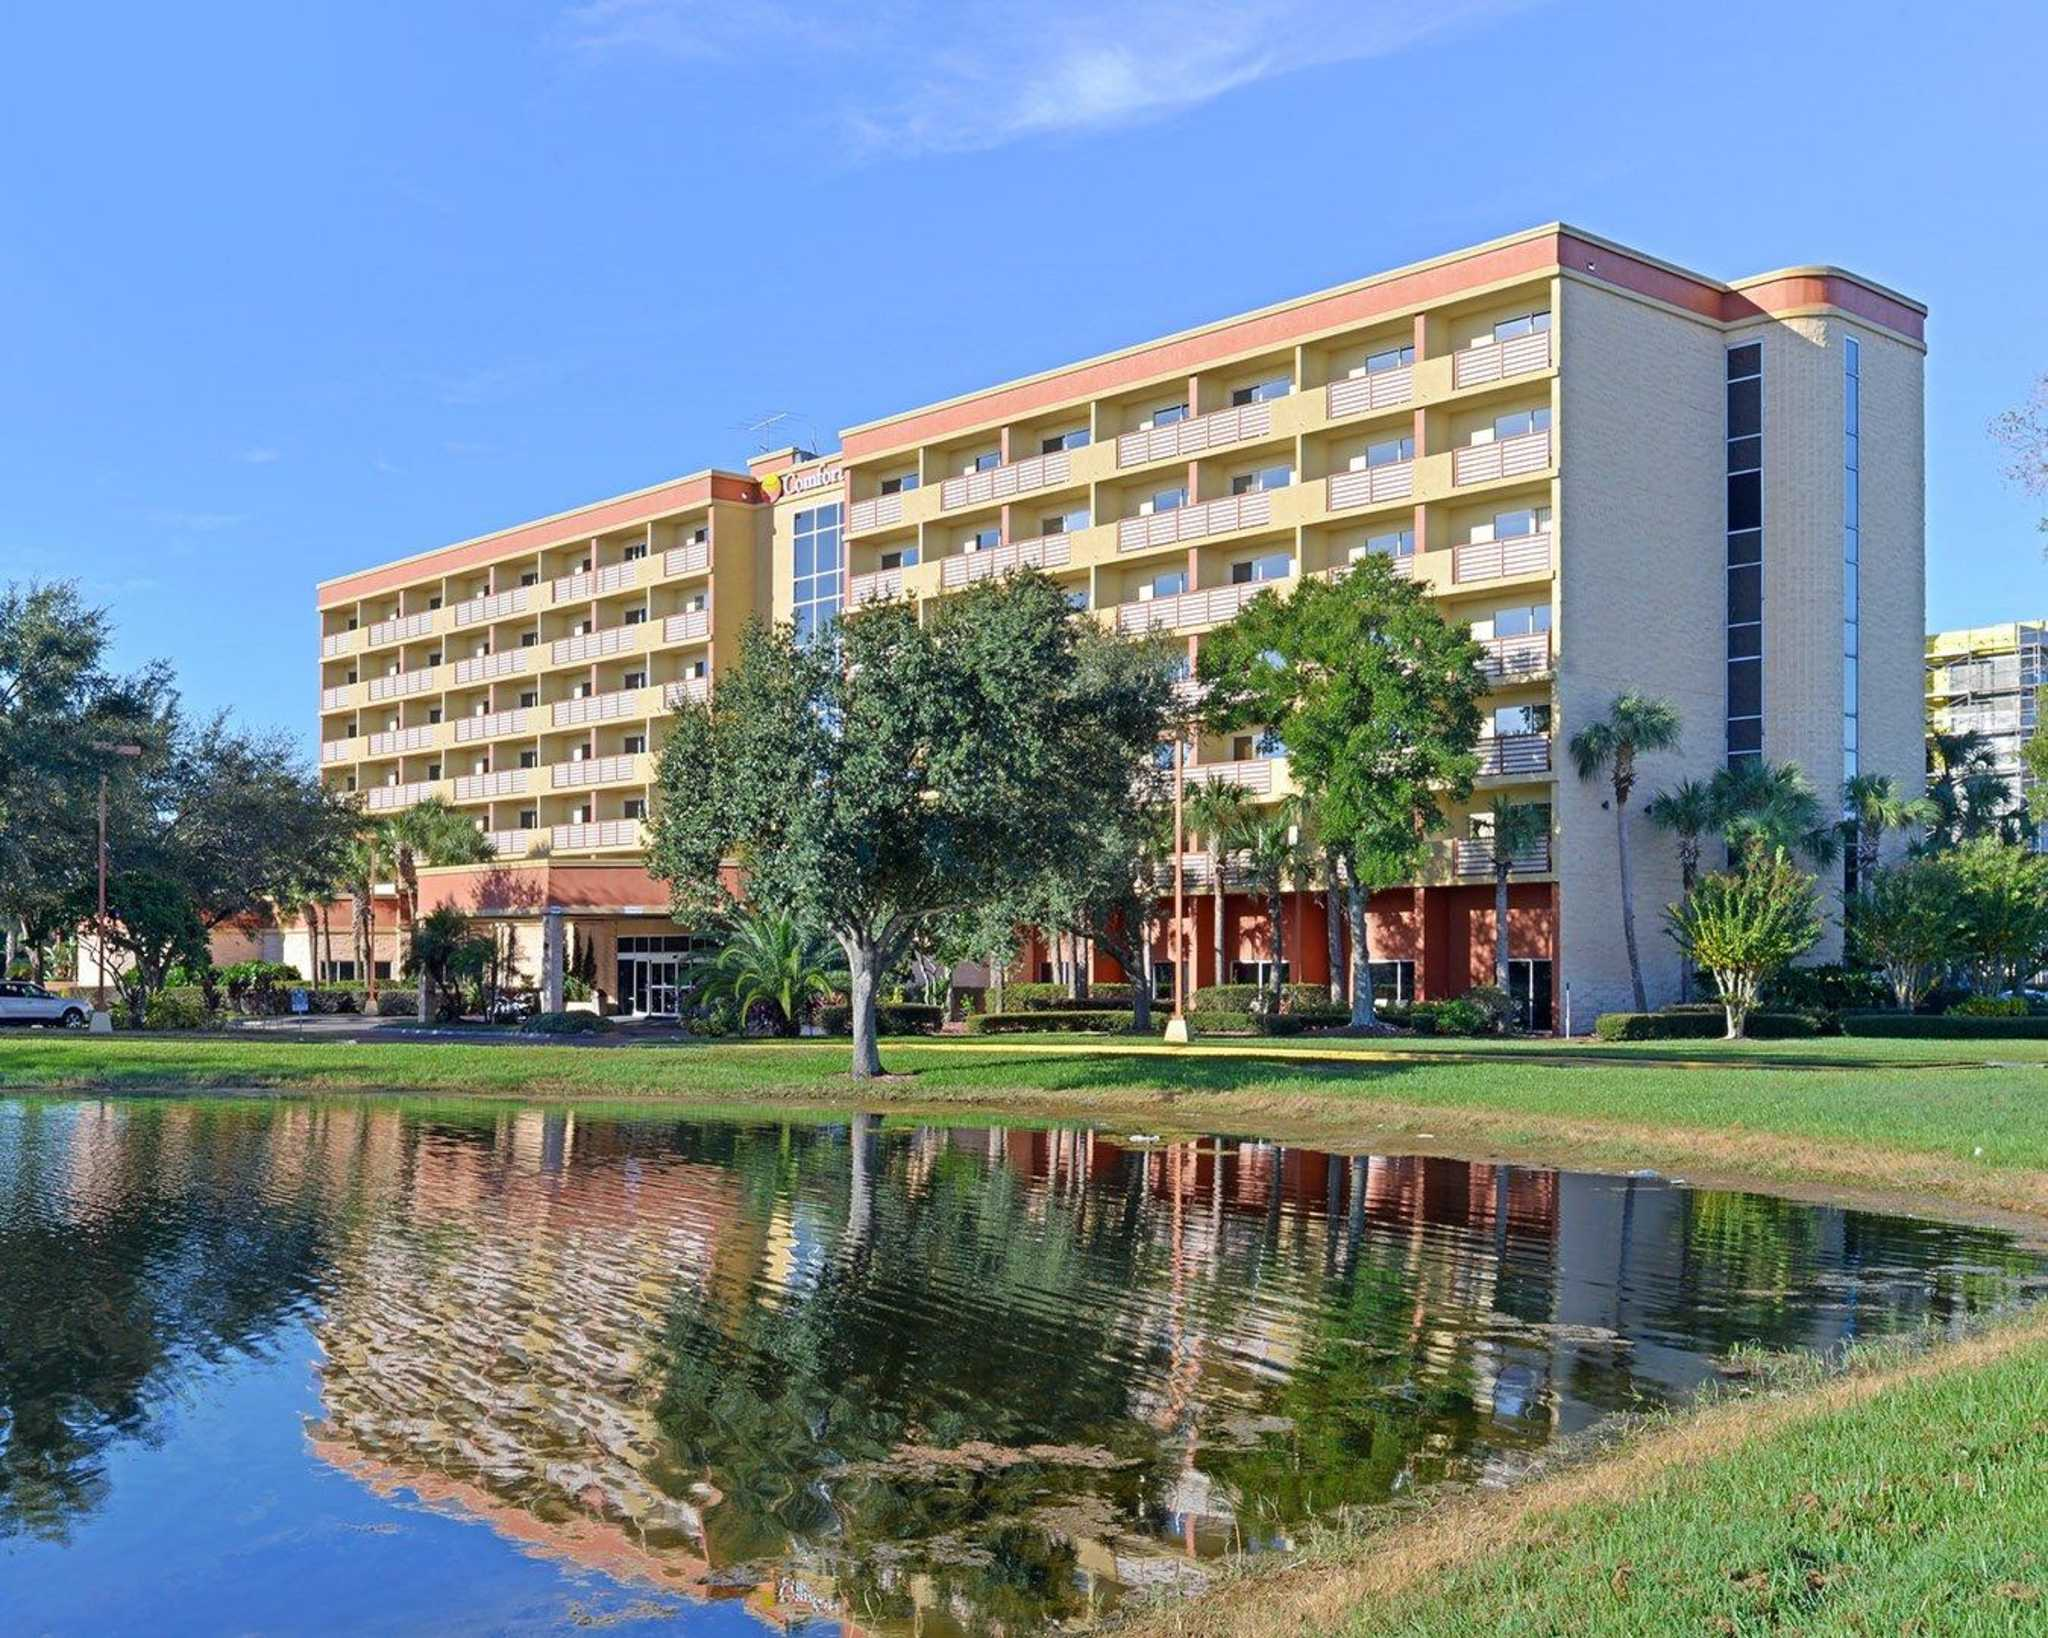 15 Best Hotels in Orlando. Hotels from $45/night - KAYAK